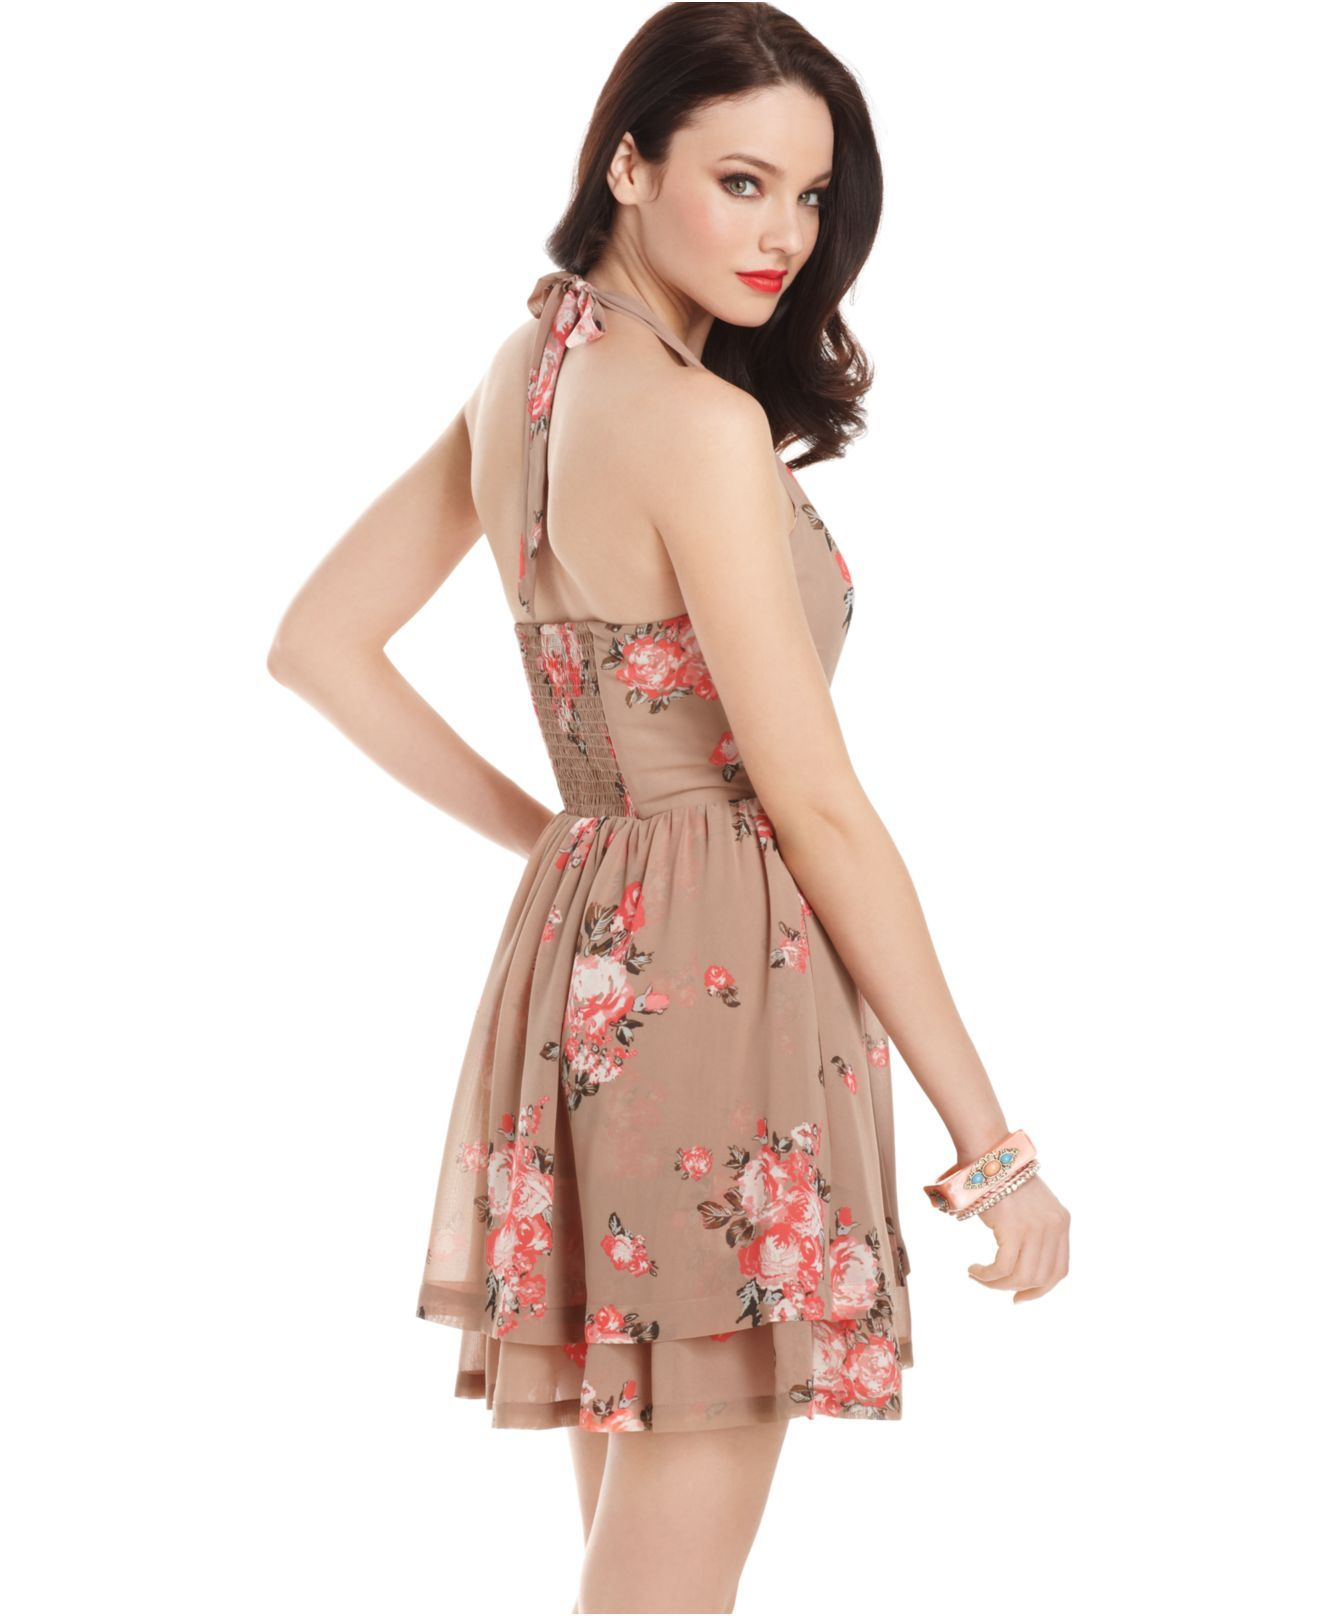 e1e71eafcb81 GUESS? Dress, Sleeveless Ingrid Floral Print Tiered Halter - Juniors Dresses  - Macy's